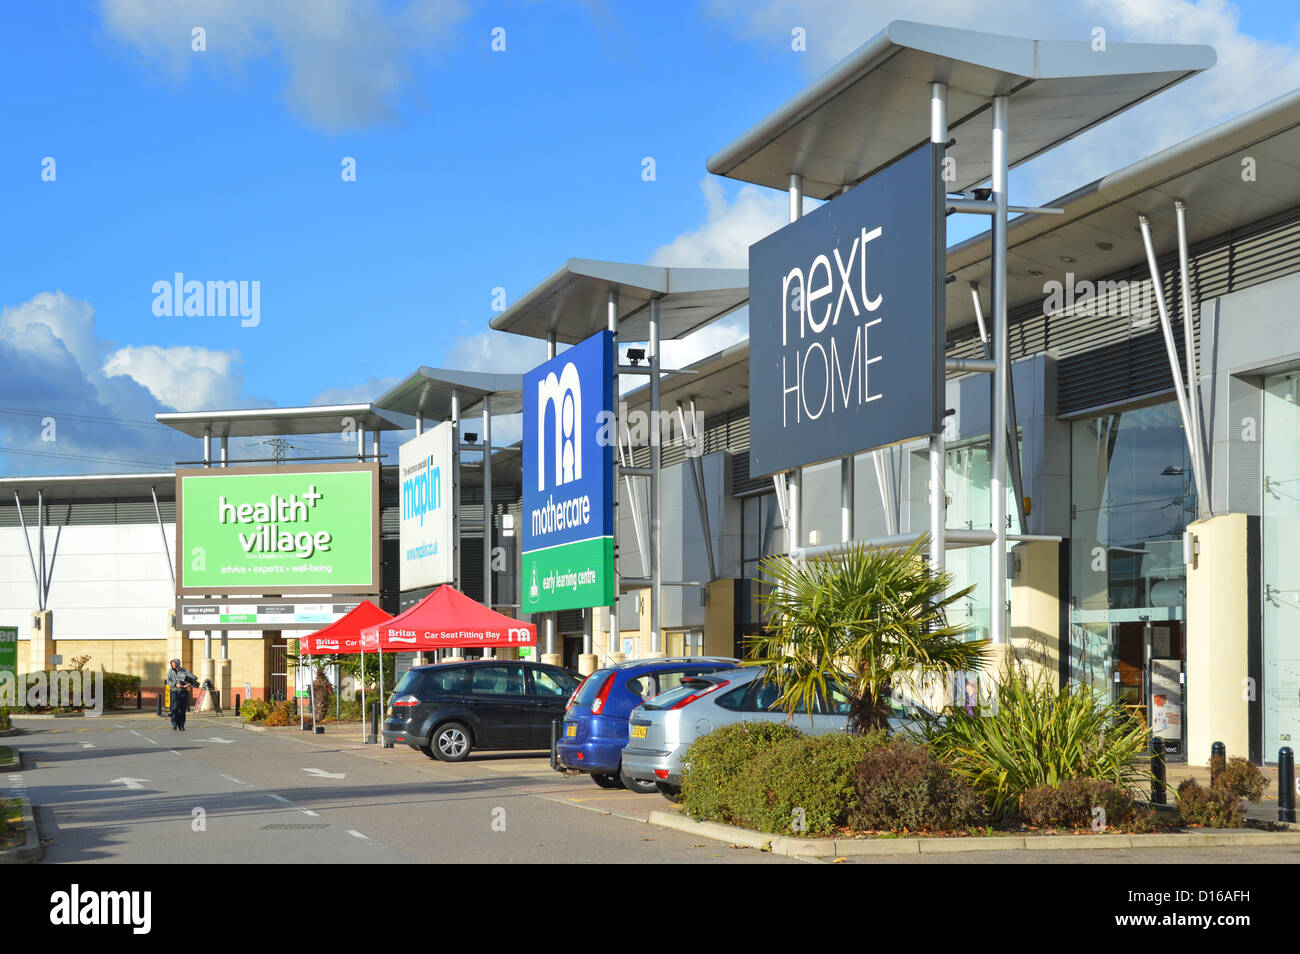 retail park shopping units and large signs - Stock Image